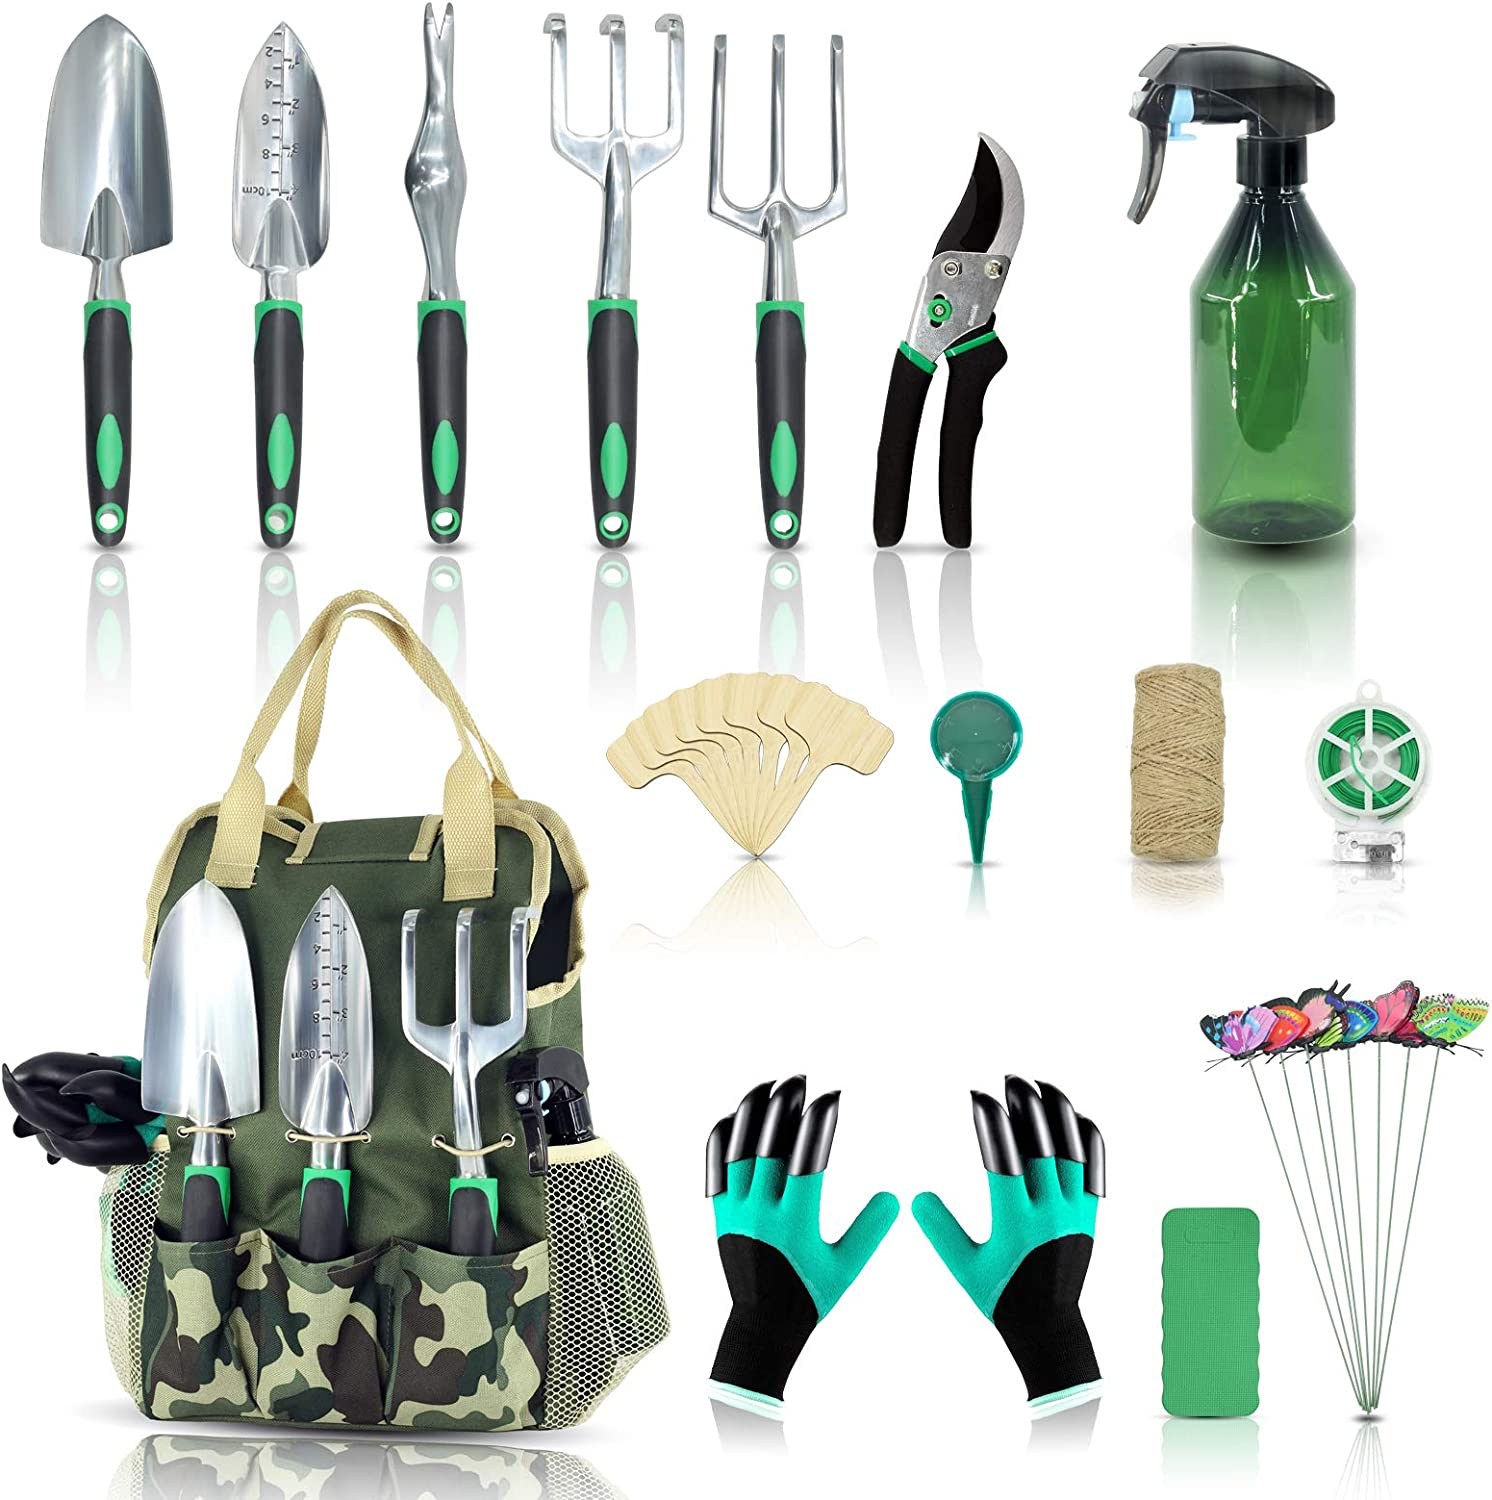 Garden Tool Set-Yartting 29 Piece, Heavy Duty Gardening Tools with Soft Rubberized Non-Slip Handle Tools, Handbag & Digging Gloves, Bypass Pruner Gifts for Women Men